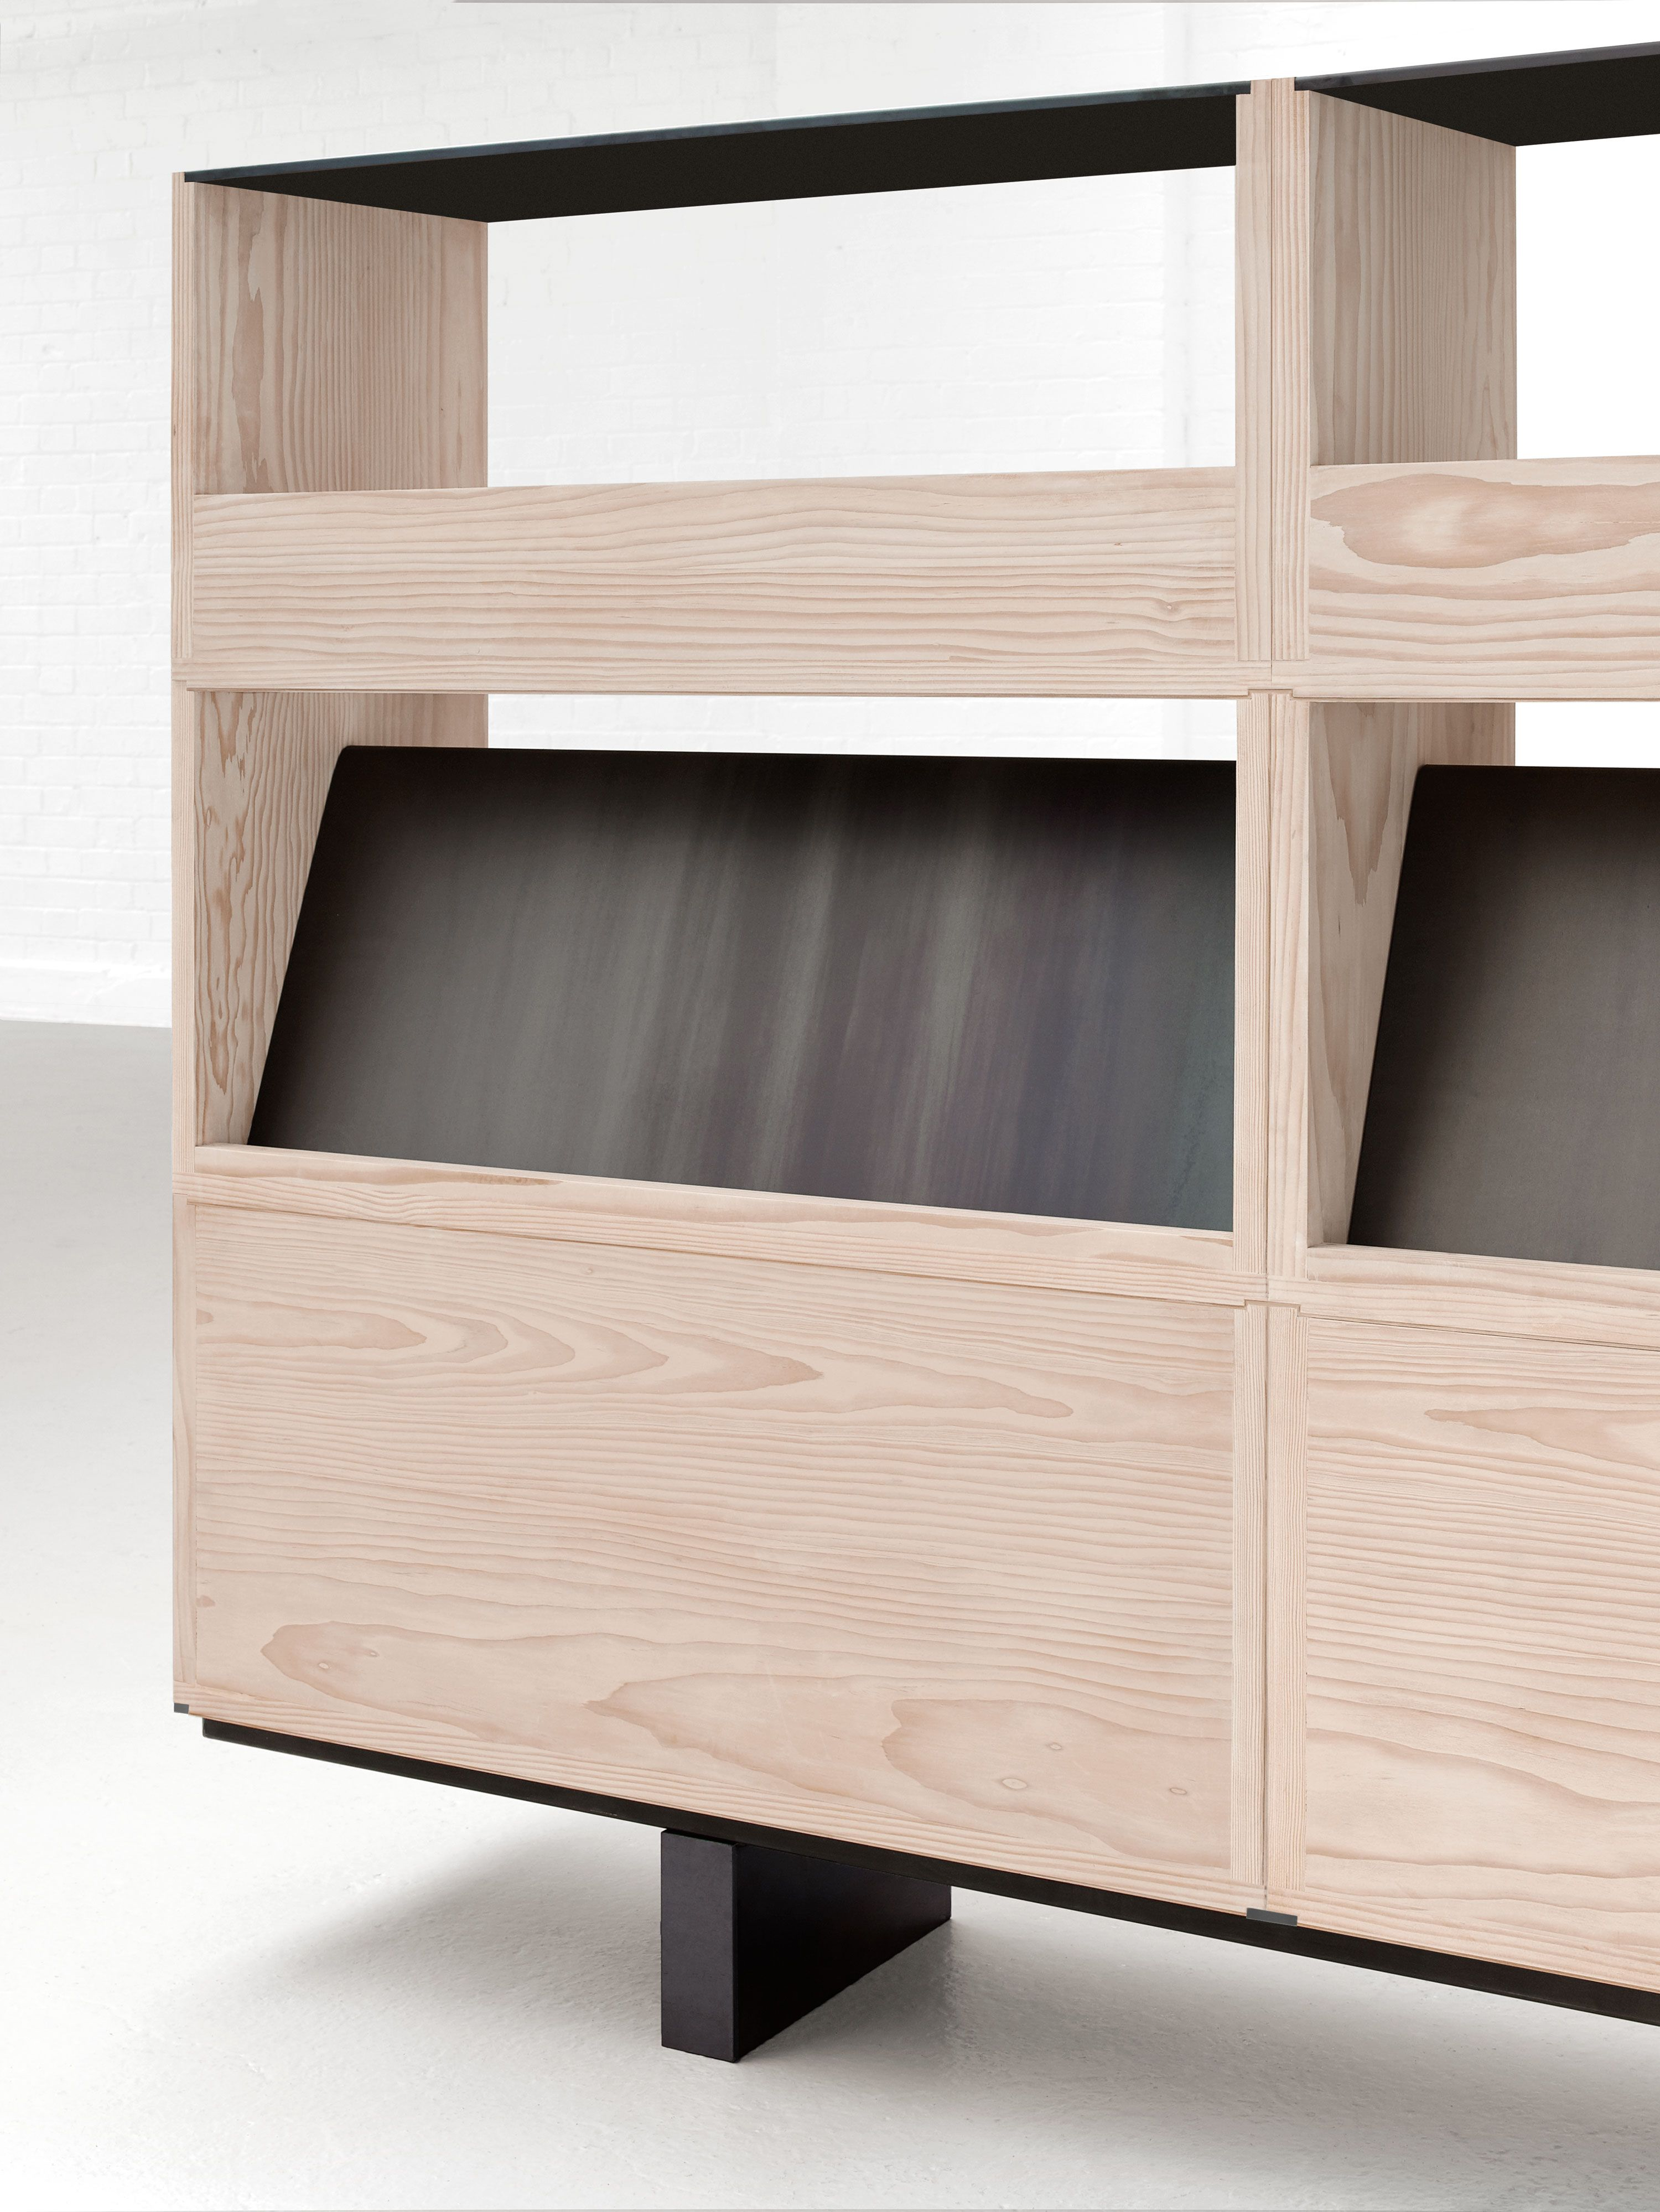 Paul crofts studio assembled collection stack isomi entryway furniture modular furniture